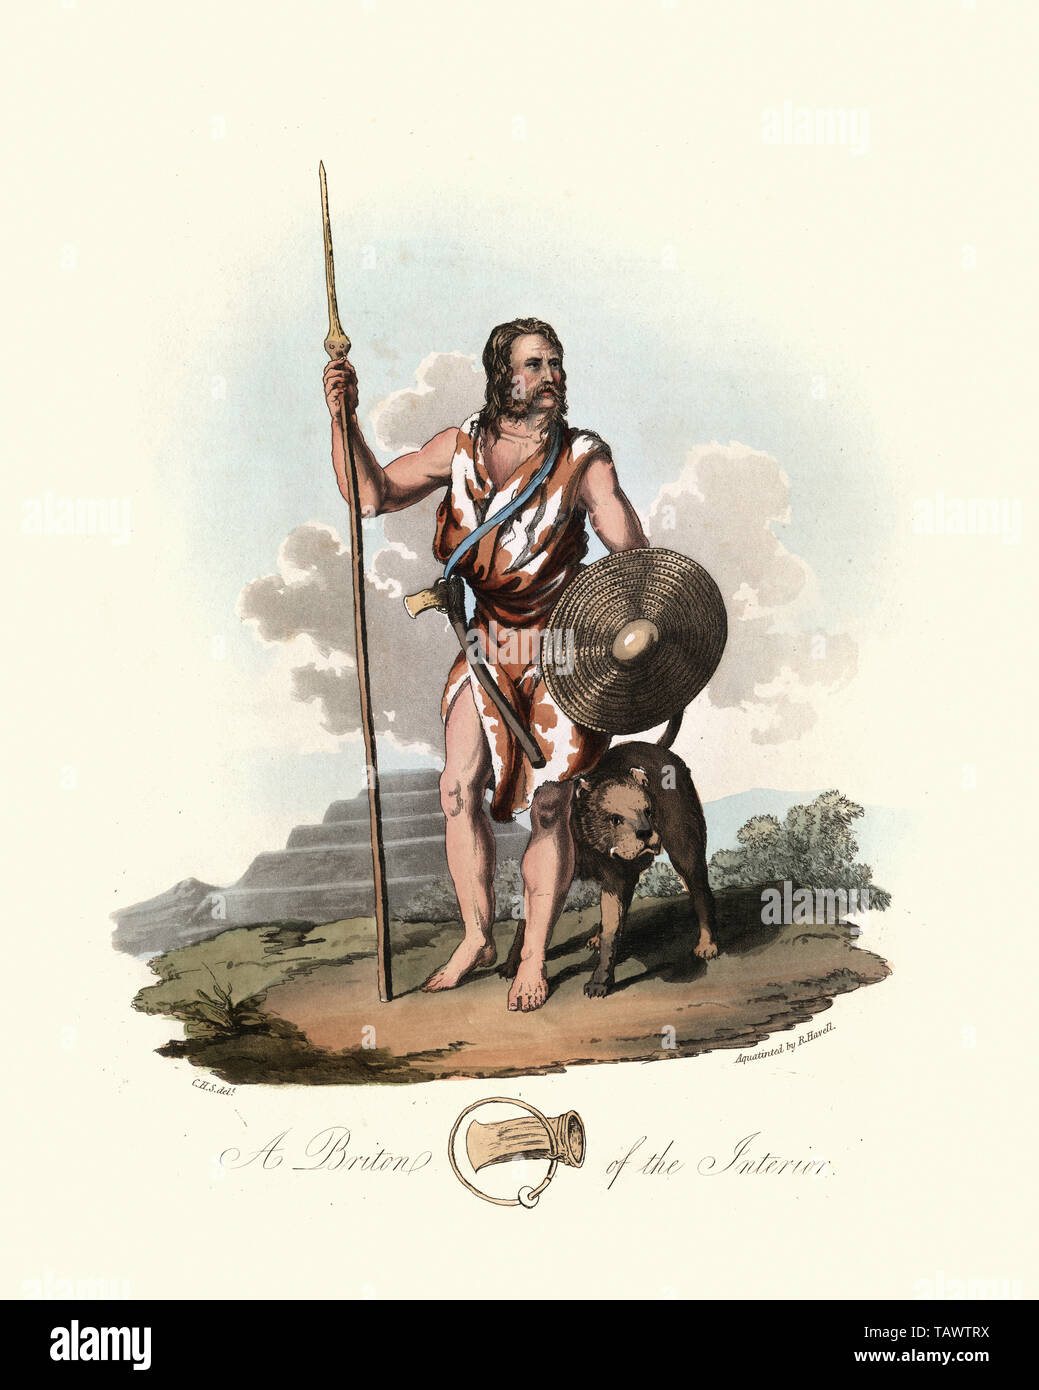 Ancient Briton warrior with spear, shield and war dog. 1815, The Costume of the Original Inhabitants of the British Islands, by MEYRICK, Samuel Rush a Stock Photo